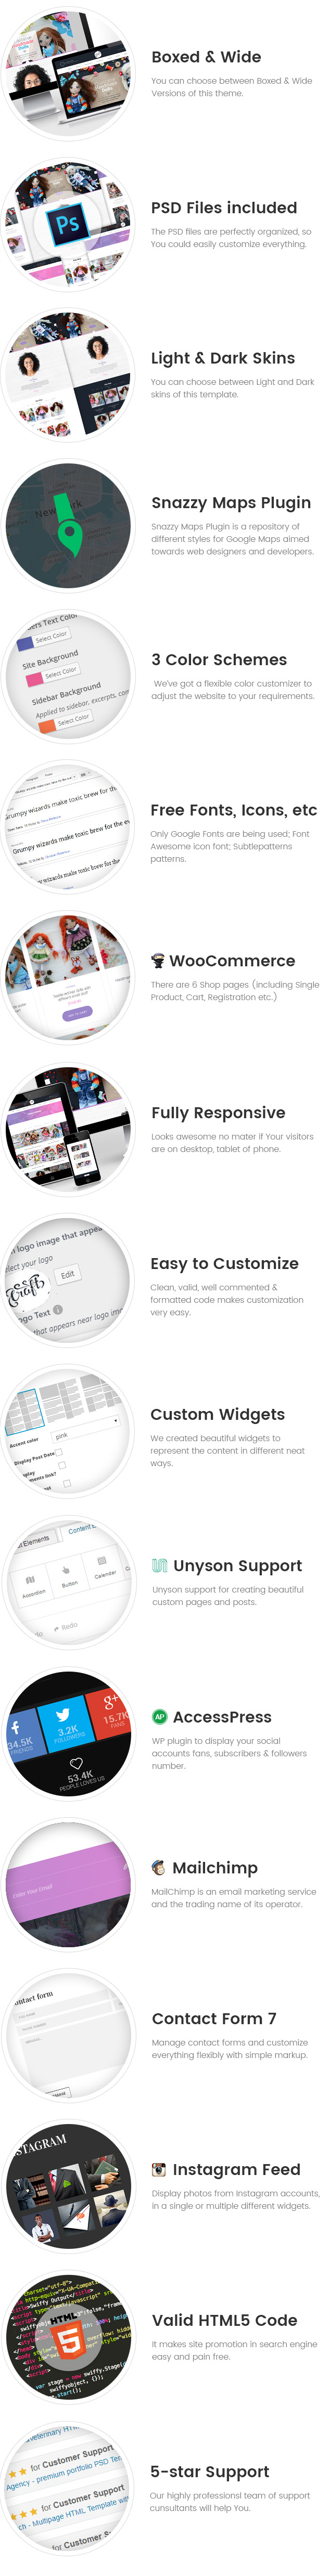 CraftPro - Hobby and Crafts WordPress Theme craftly - hobby and crafts wordpress theme (creative) Craftly – Hobby and Crafts WordPress Theme (Creative) craftpro wp features